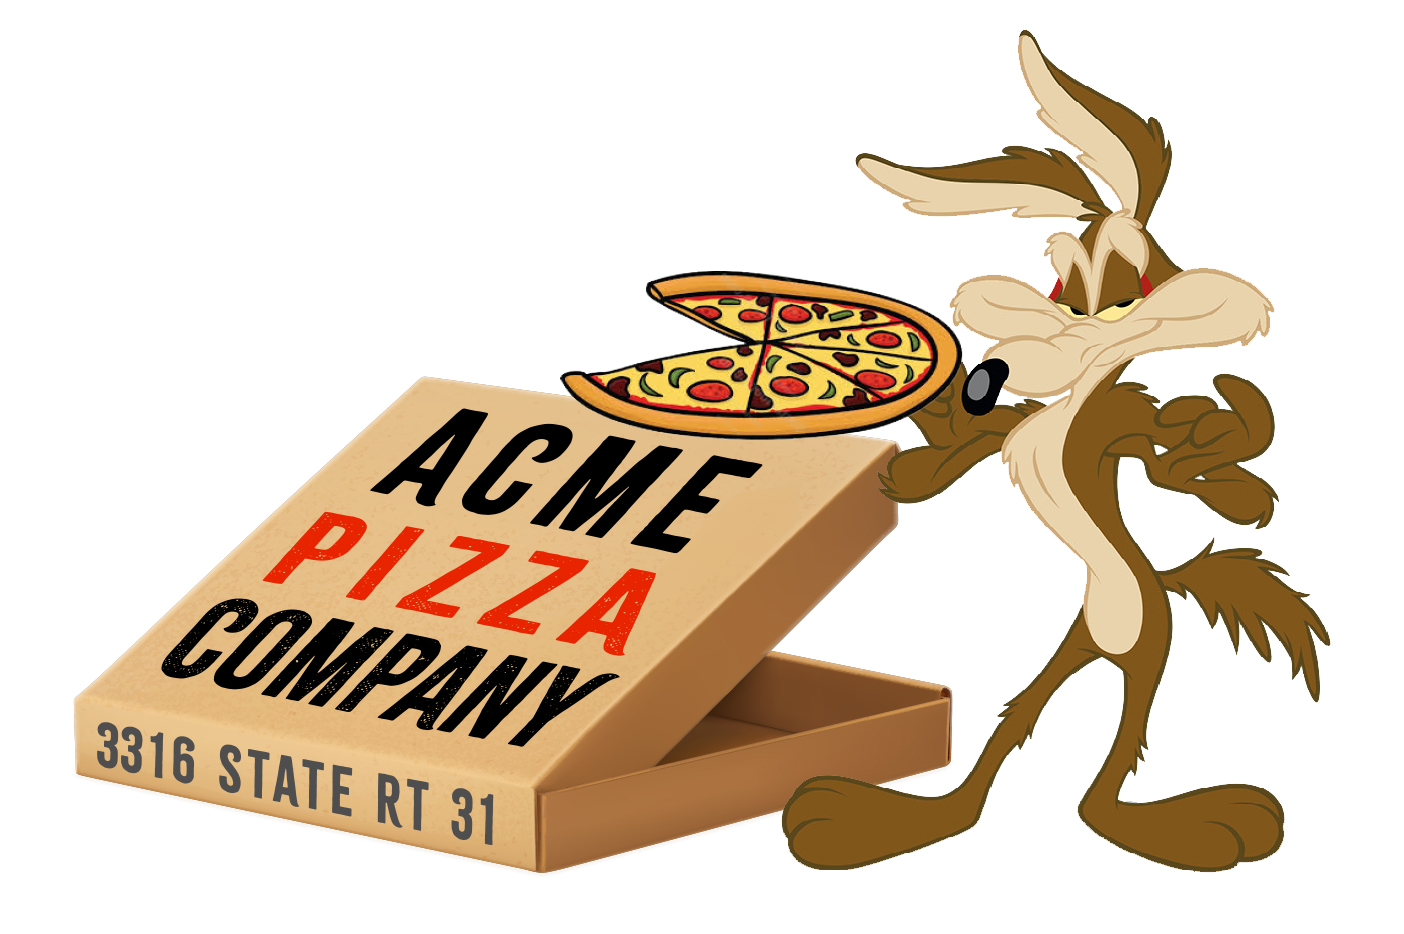 Acme Pizza in Donegal, PA